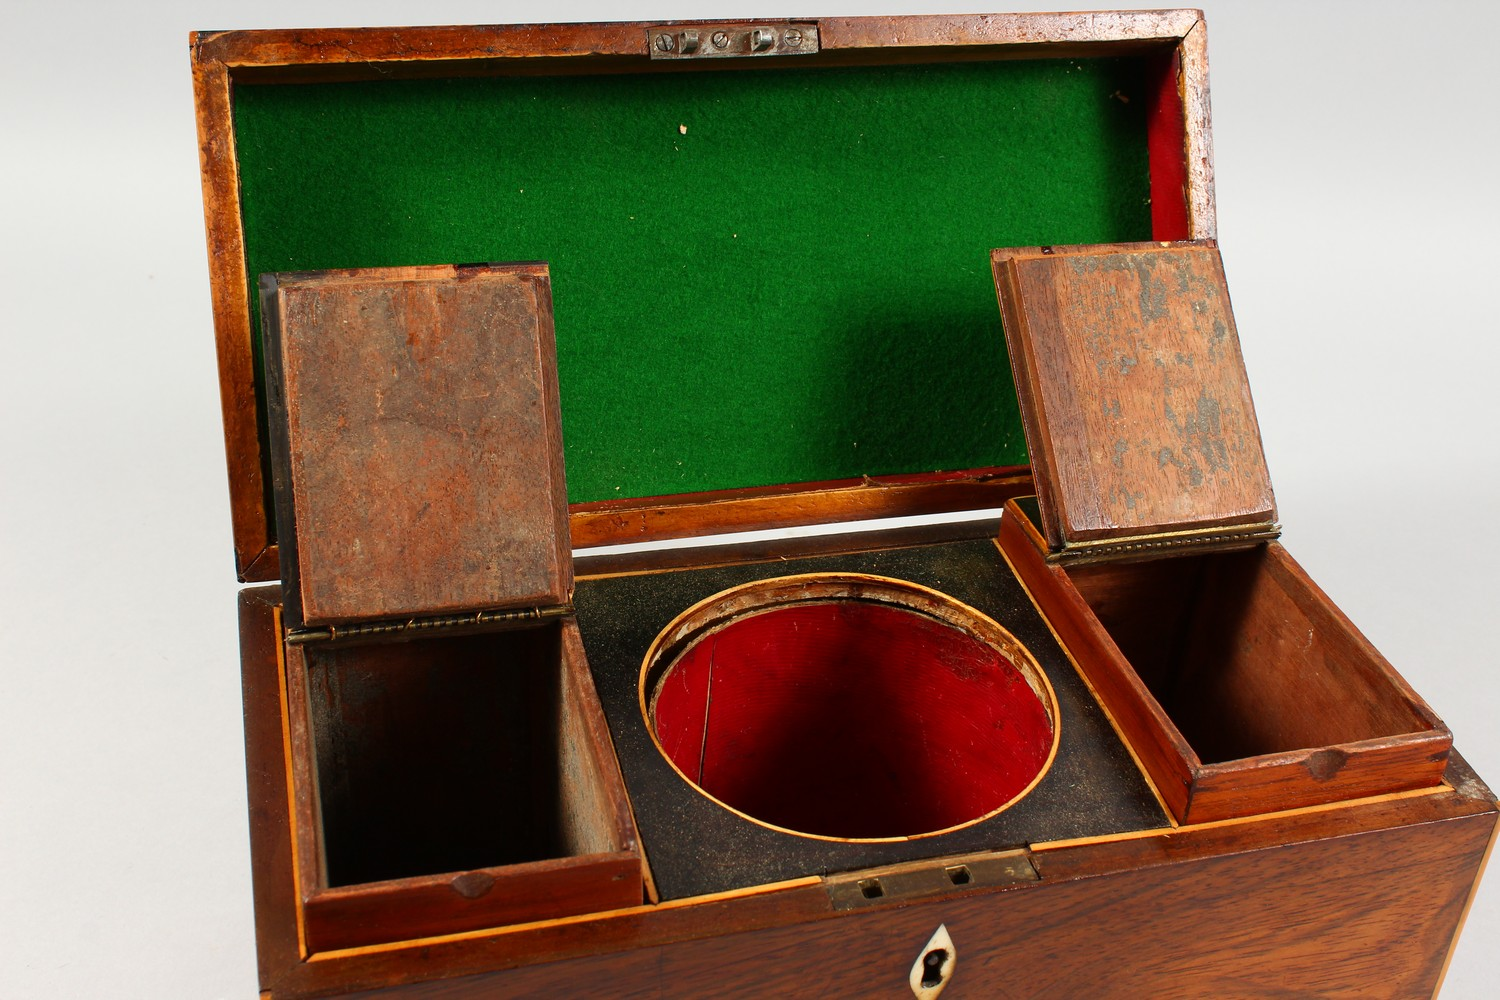 Lot 1477 - A 19TH CENTURY ROSEWOOD RECTANGULAR TEA CADDY. 12ins wide.